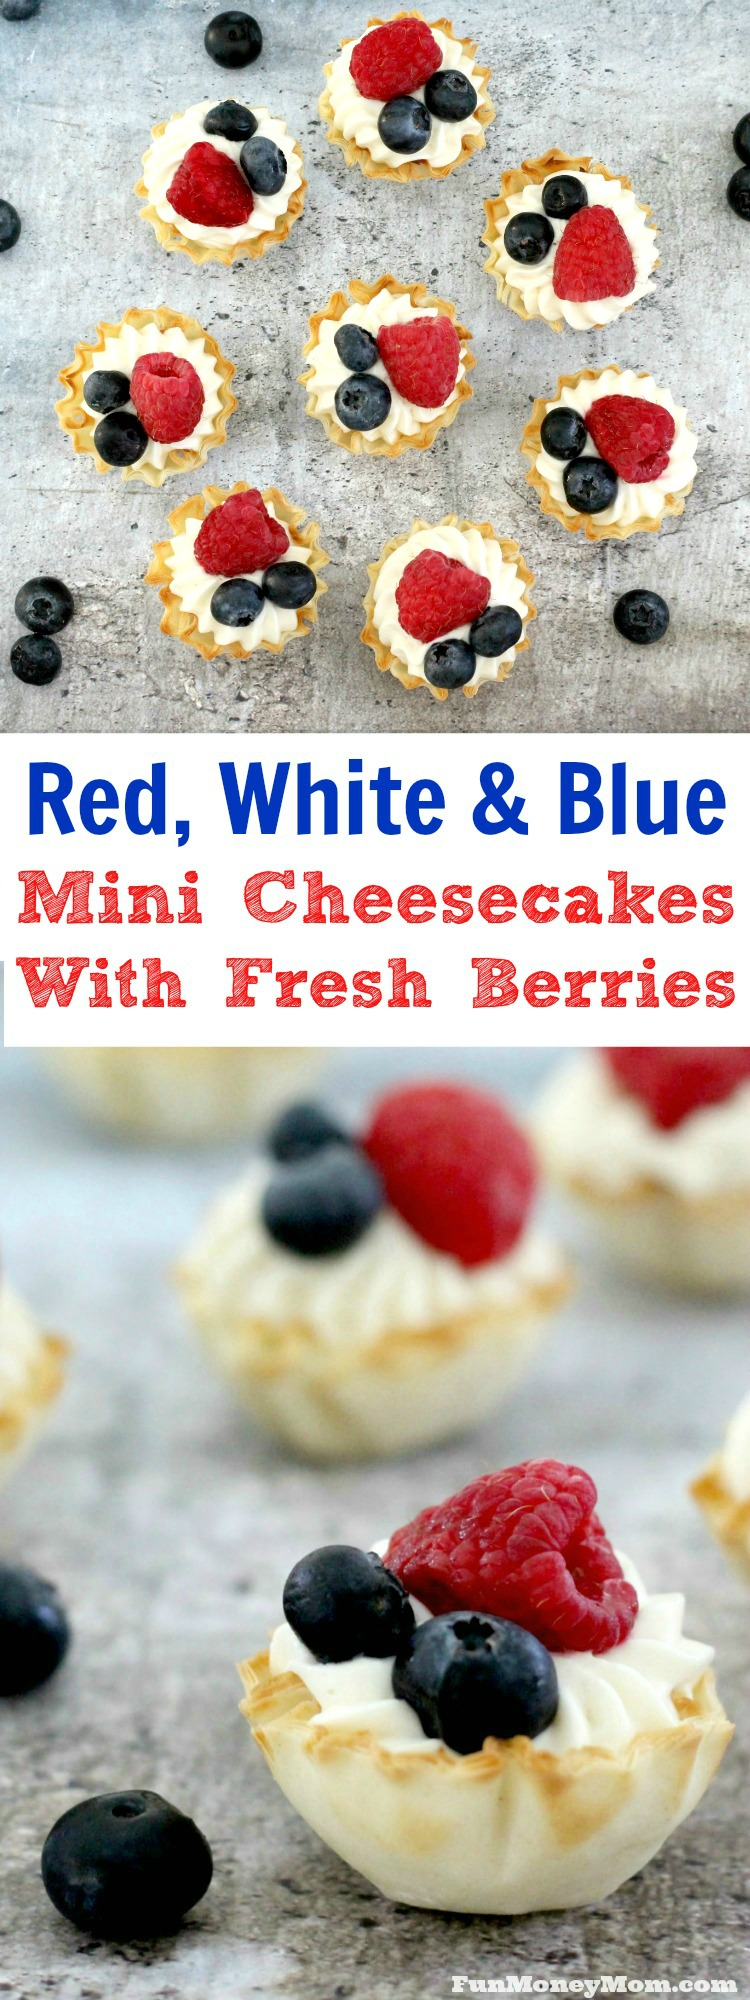 Need a fun but easy to make last minute dessert? Whip up these delicious no bake cheesecake bites with fresh berries in a matter of minutes. It's the perfect party food for summer holidays!